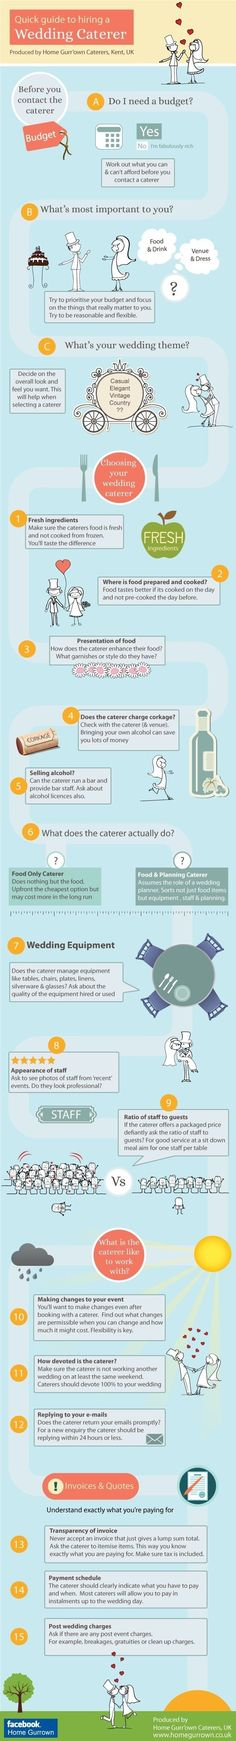 When it comes time to start researching your vendors, you'll want to know what questions to ask your caterer!